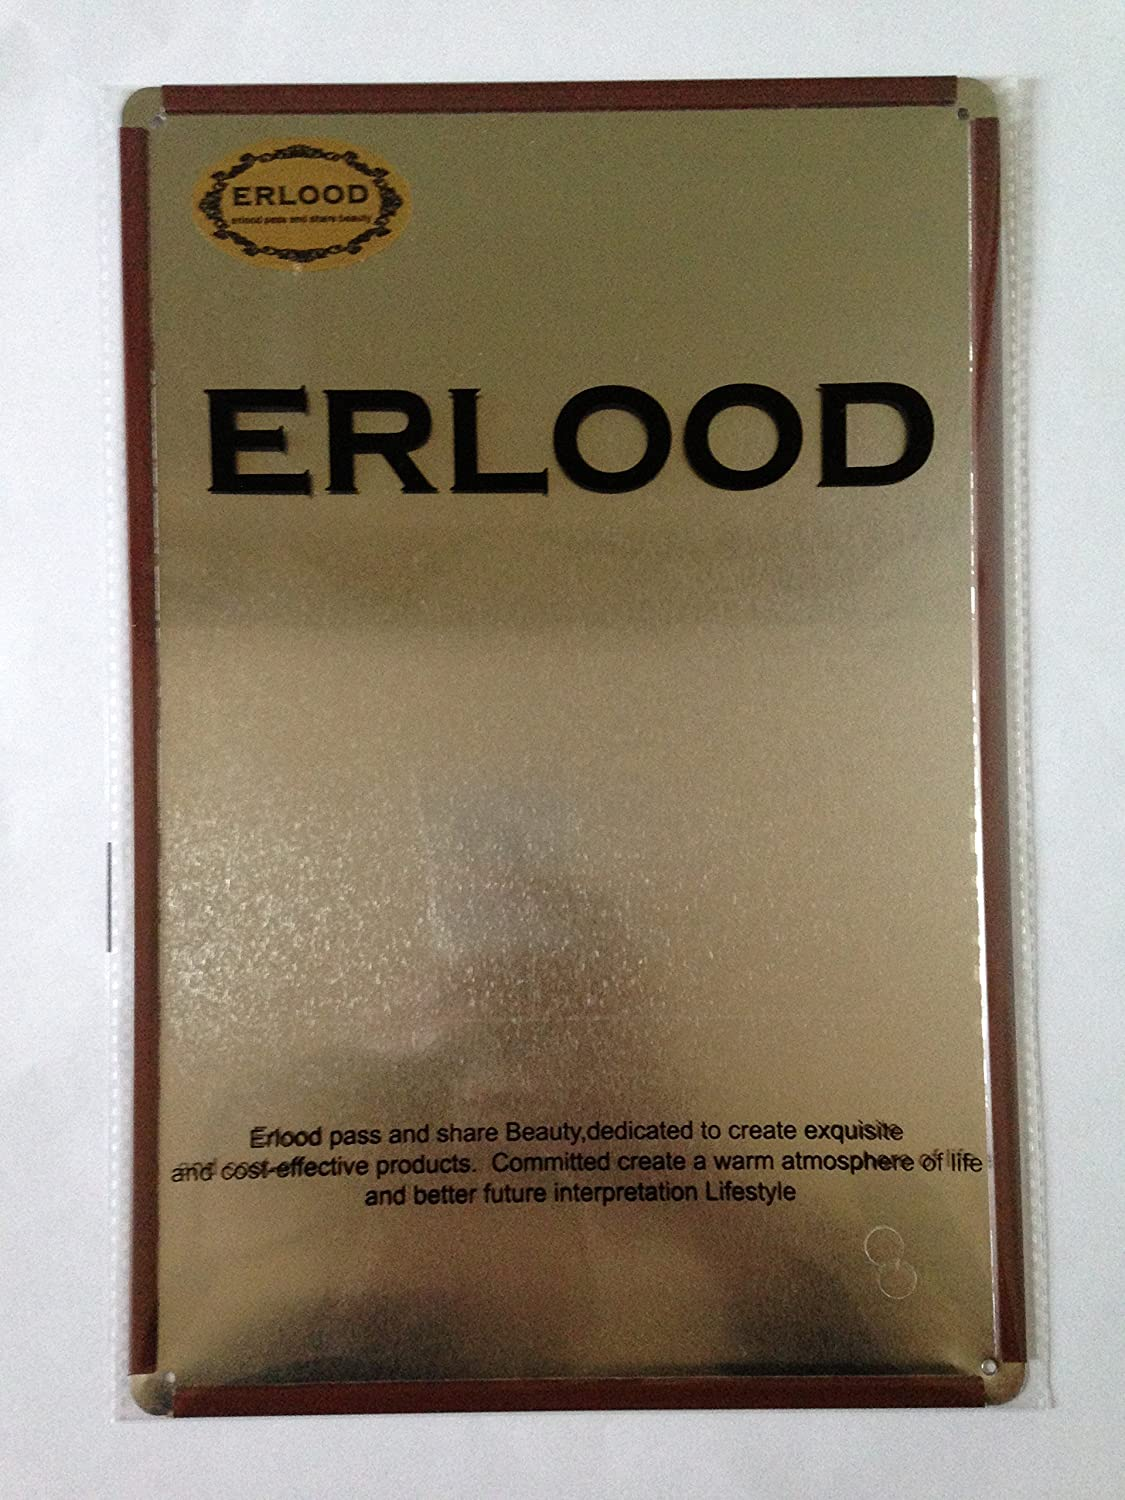 Amazon.com: ERLOOD Tin Signs Vintage Wall Retro Metal Bar Pub Poster American Craft Beer Week 12 X 8: Posters & Prints